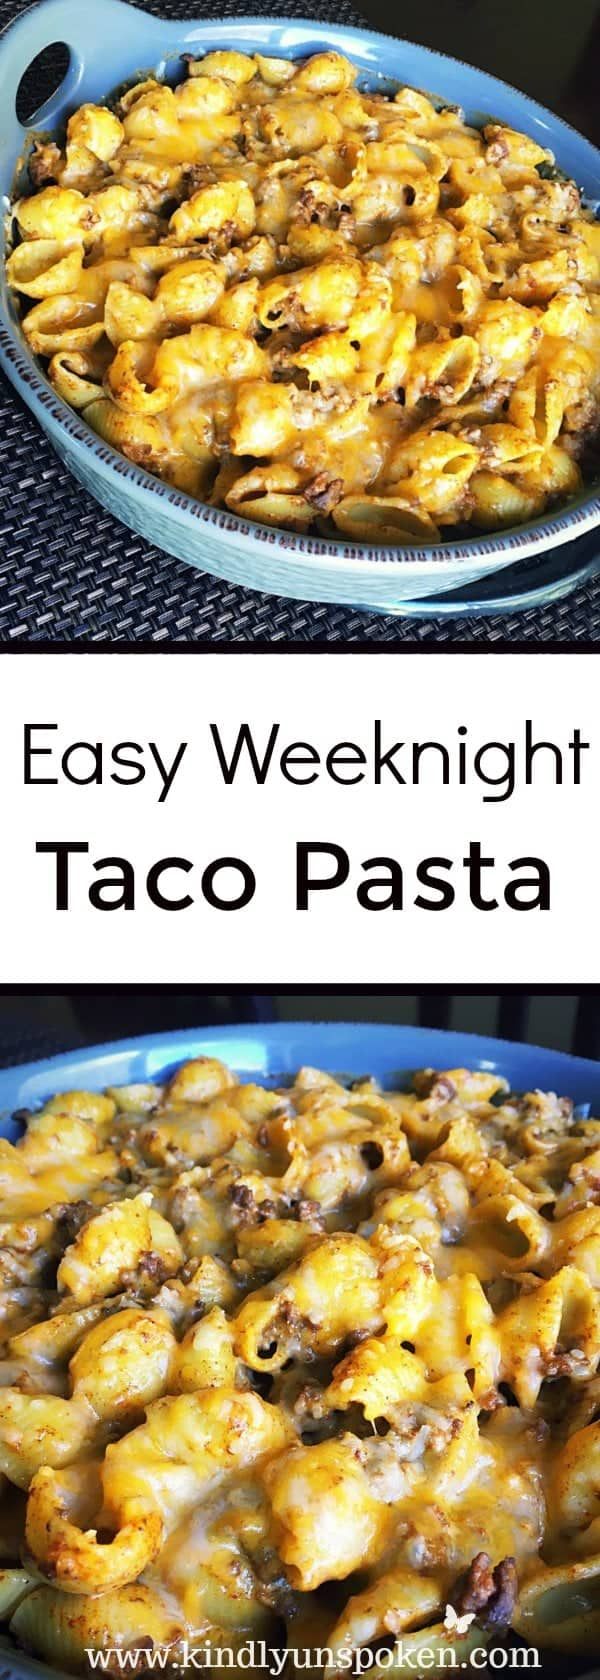 Easy Weeknight Taco Pasta -This Easy Weeknight Taco Pasta combines the wholesomeness of pasta with the delicious flavors of cheesy, beef tacos and will be enjoyed by the whole family!